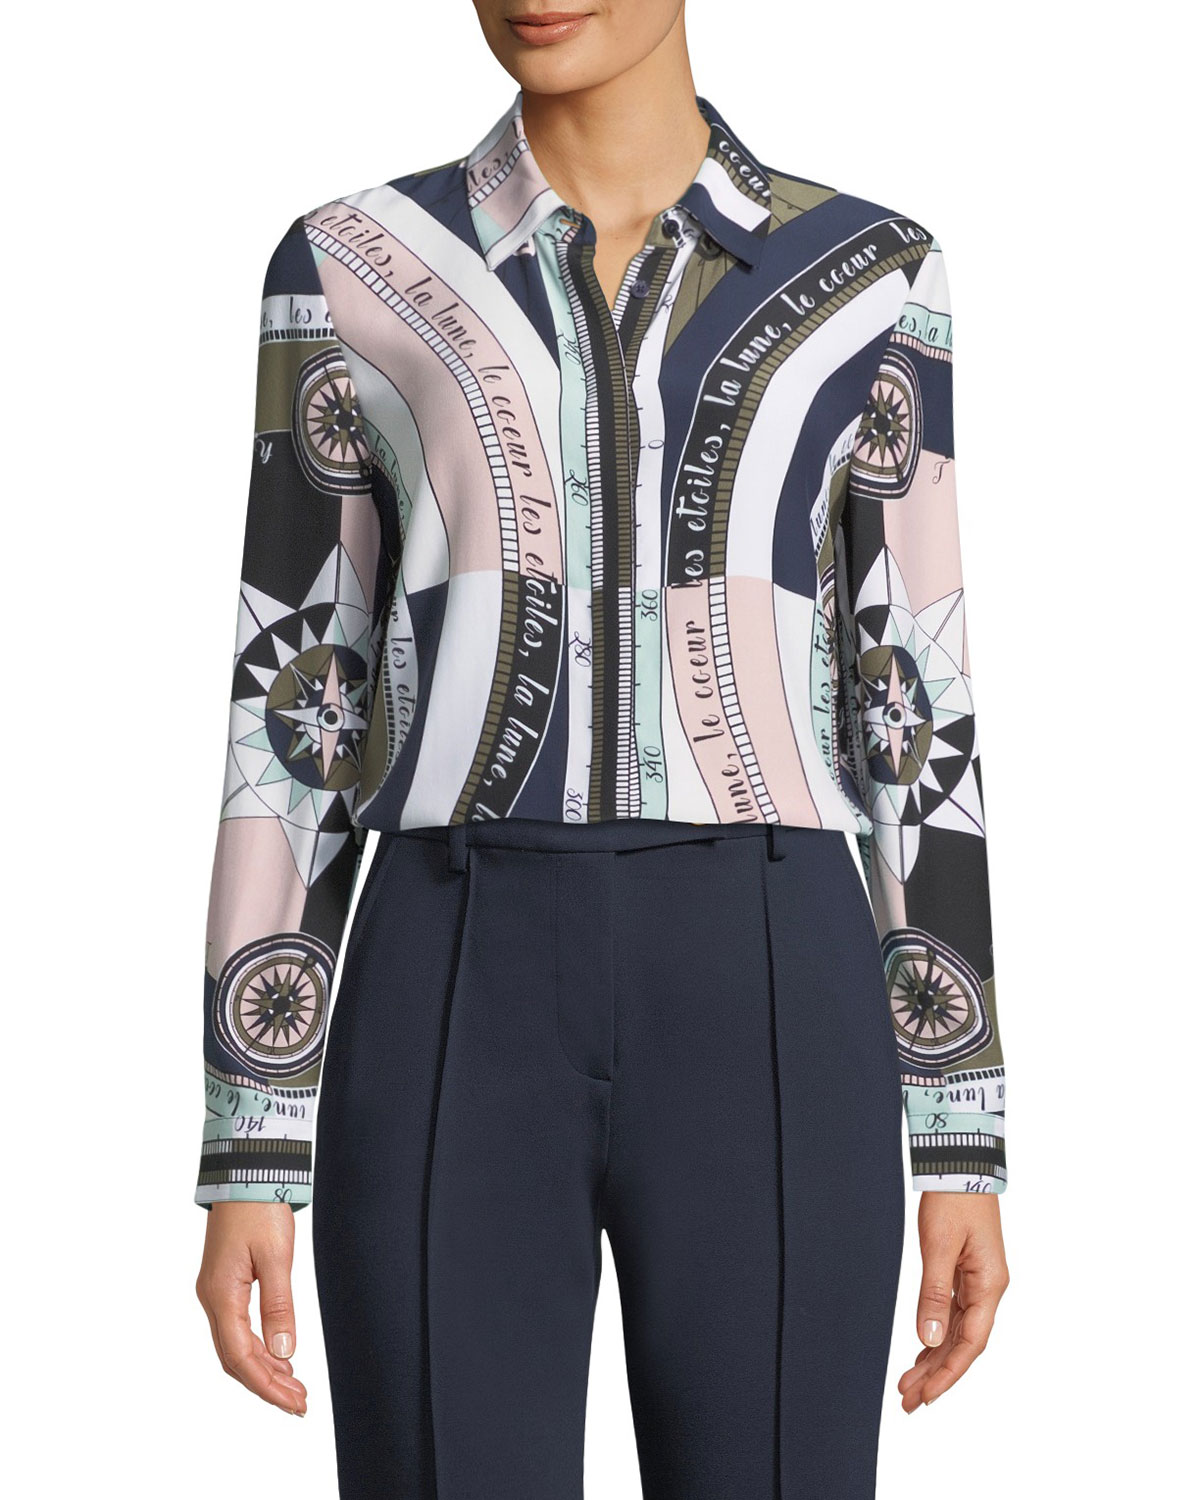 Constellation Silk Satin Shirt